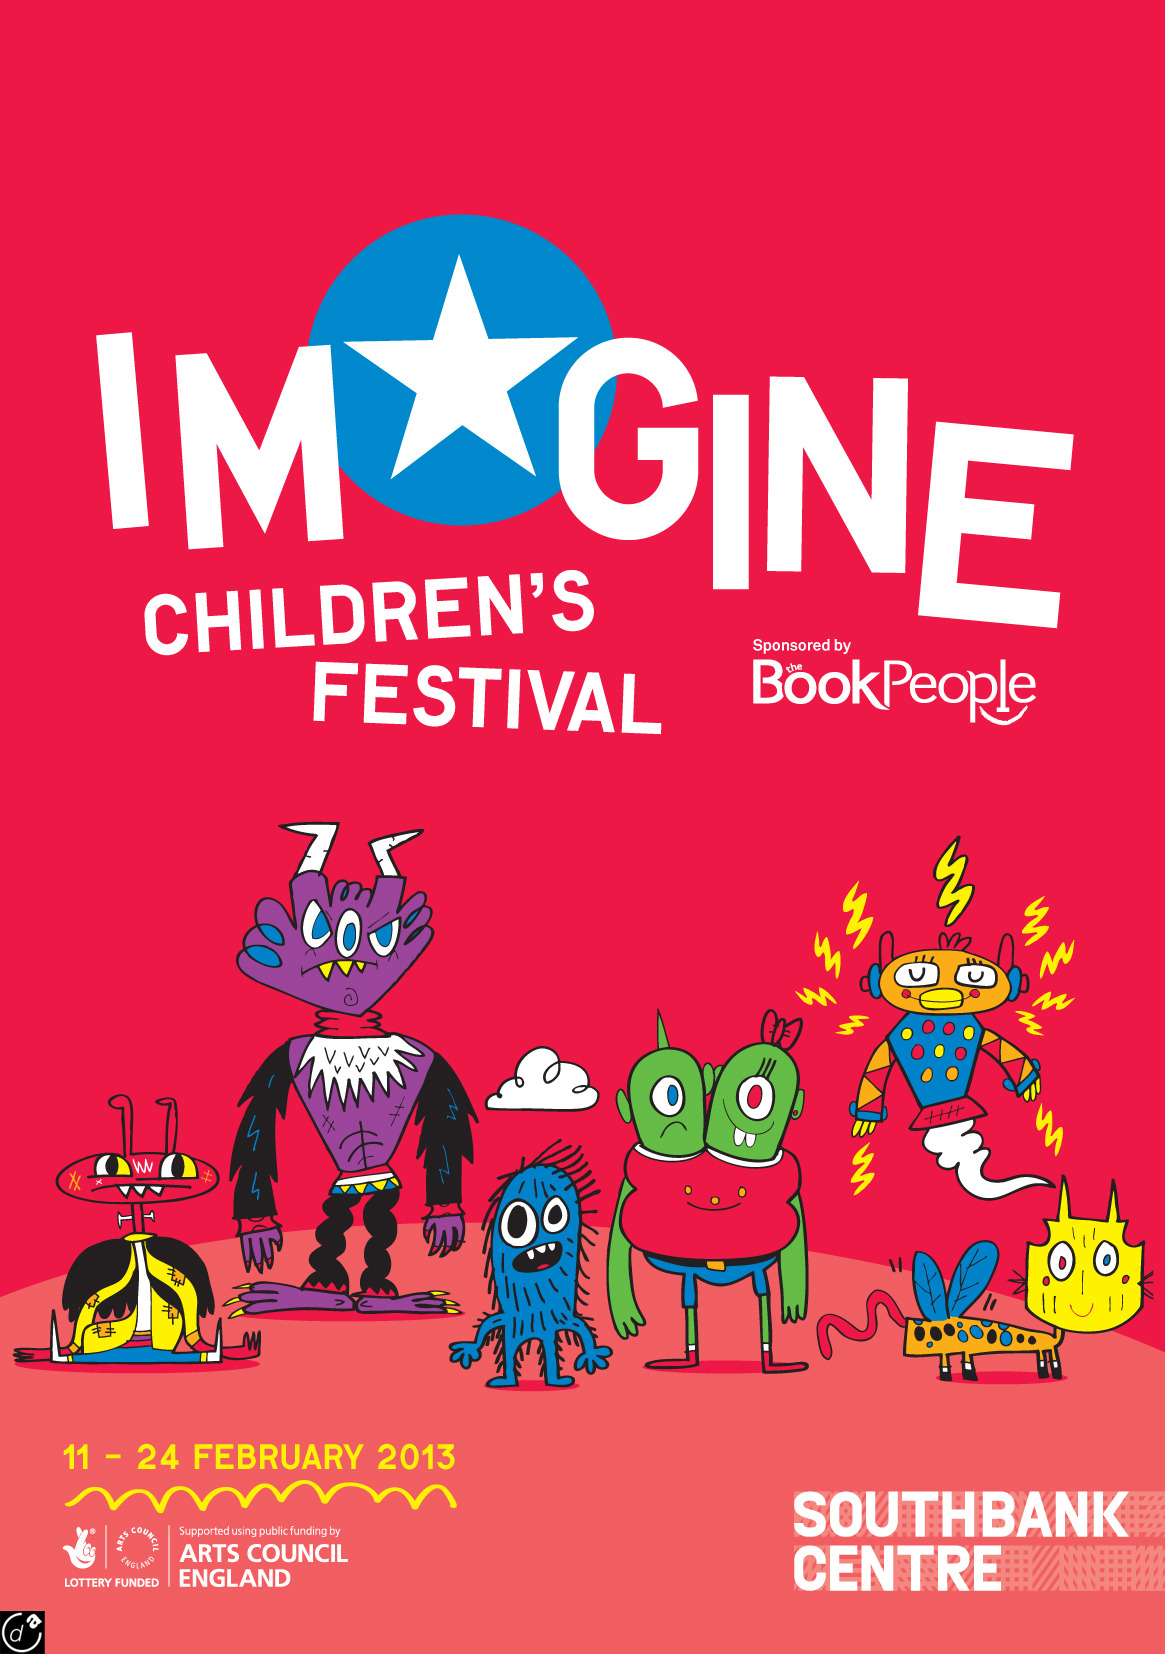 Jon Burgerman has designed 6 characters for a children's festival, 'Imagine children's festival', at the Southbank Centre in London. Jons illustrations are based on drawings made by children submitted especially for the event. He took all their many drawings and selected different elements and integrated them into the character designs. The work will be appearing as posters (one of the posters being above), stickers, signs, t-shirts and more all over the festival venue. The festival is from February 11th -24th 2013 with more info here.